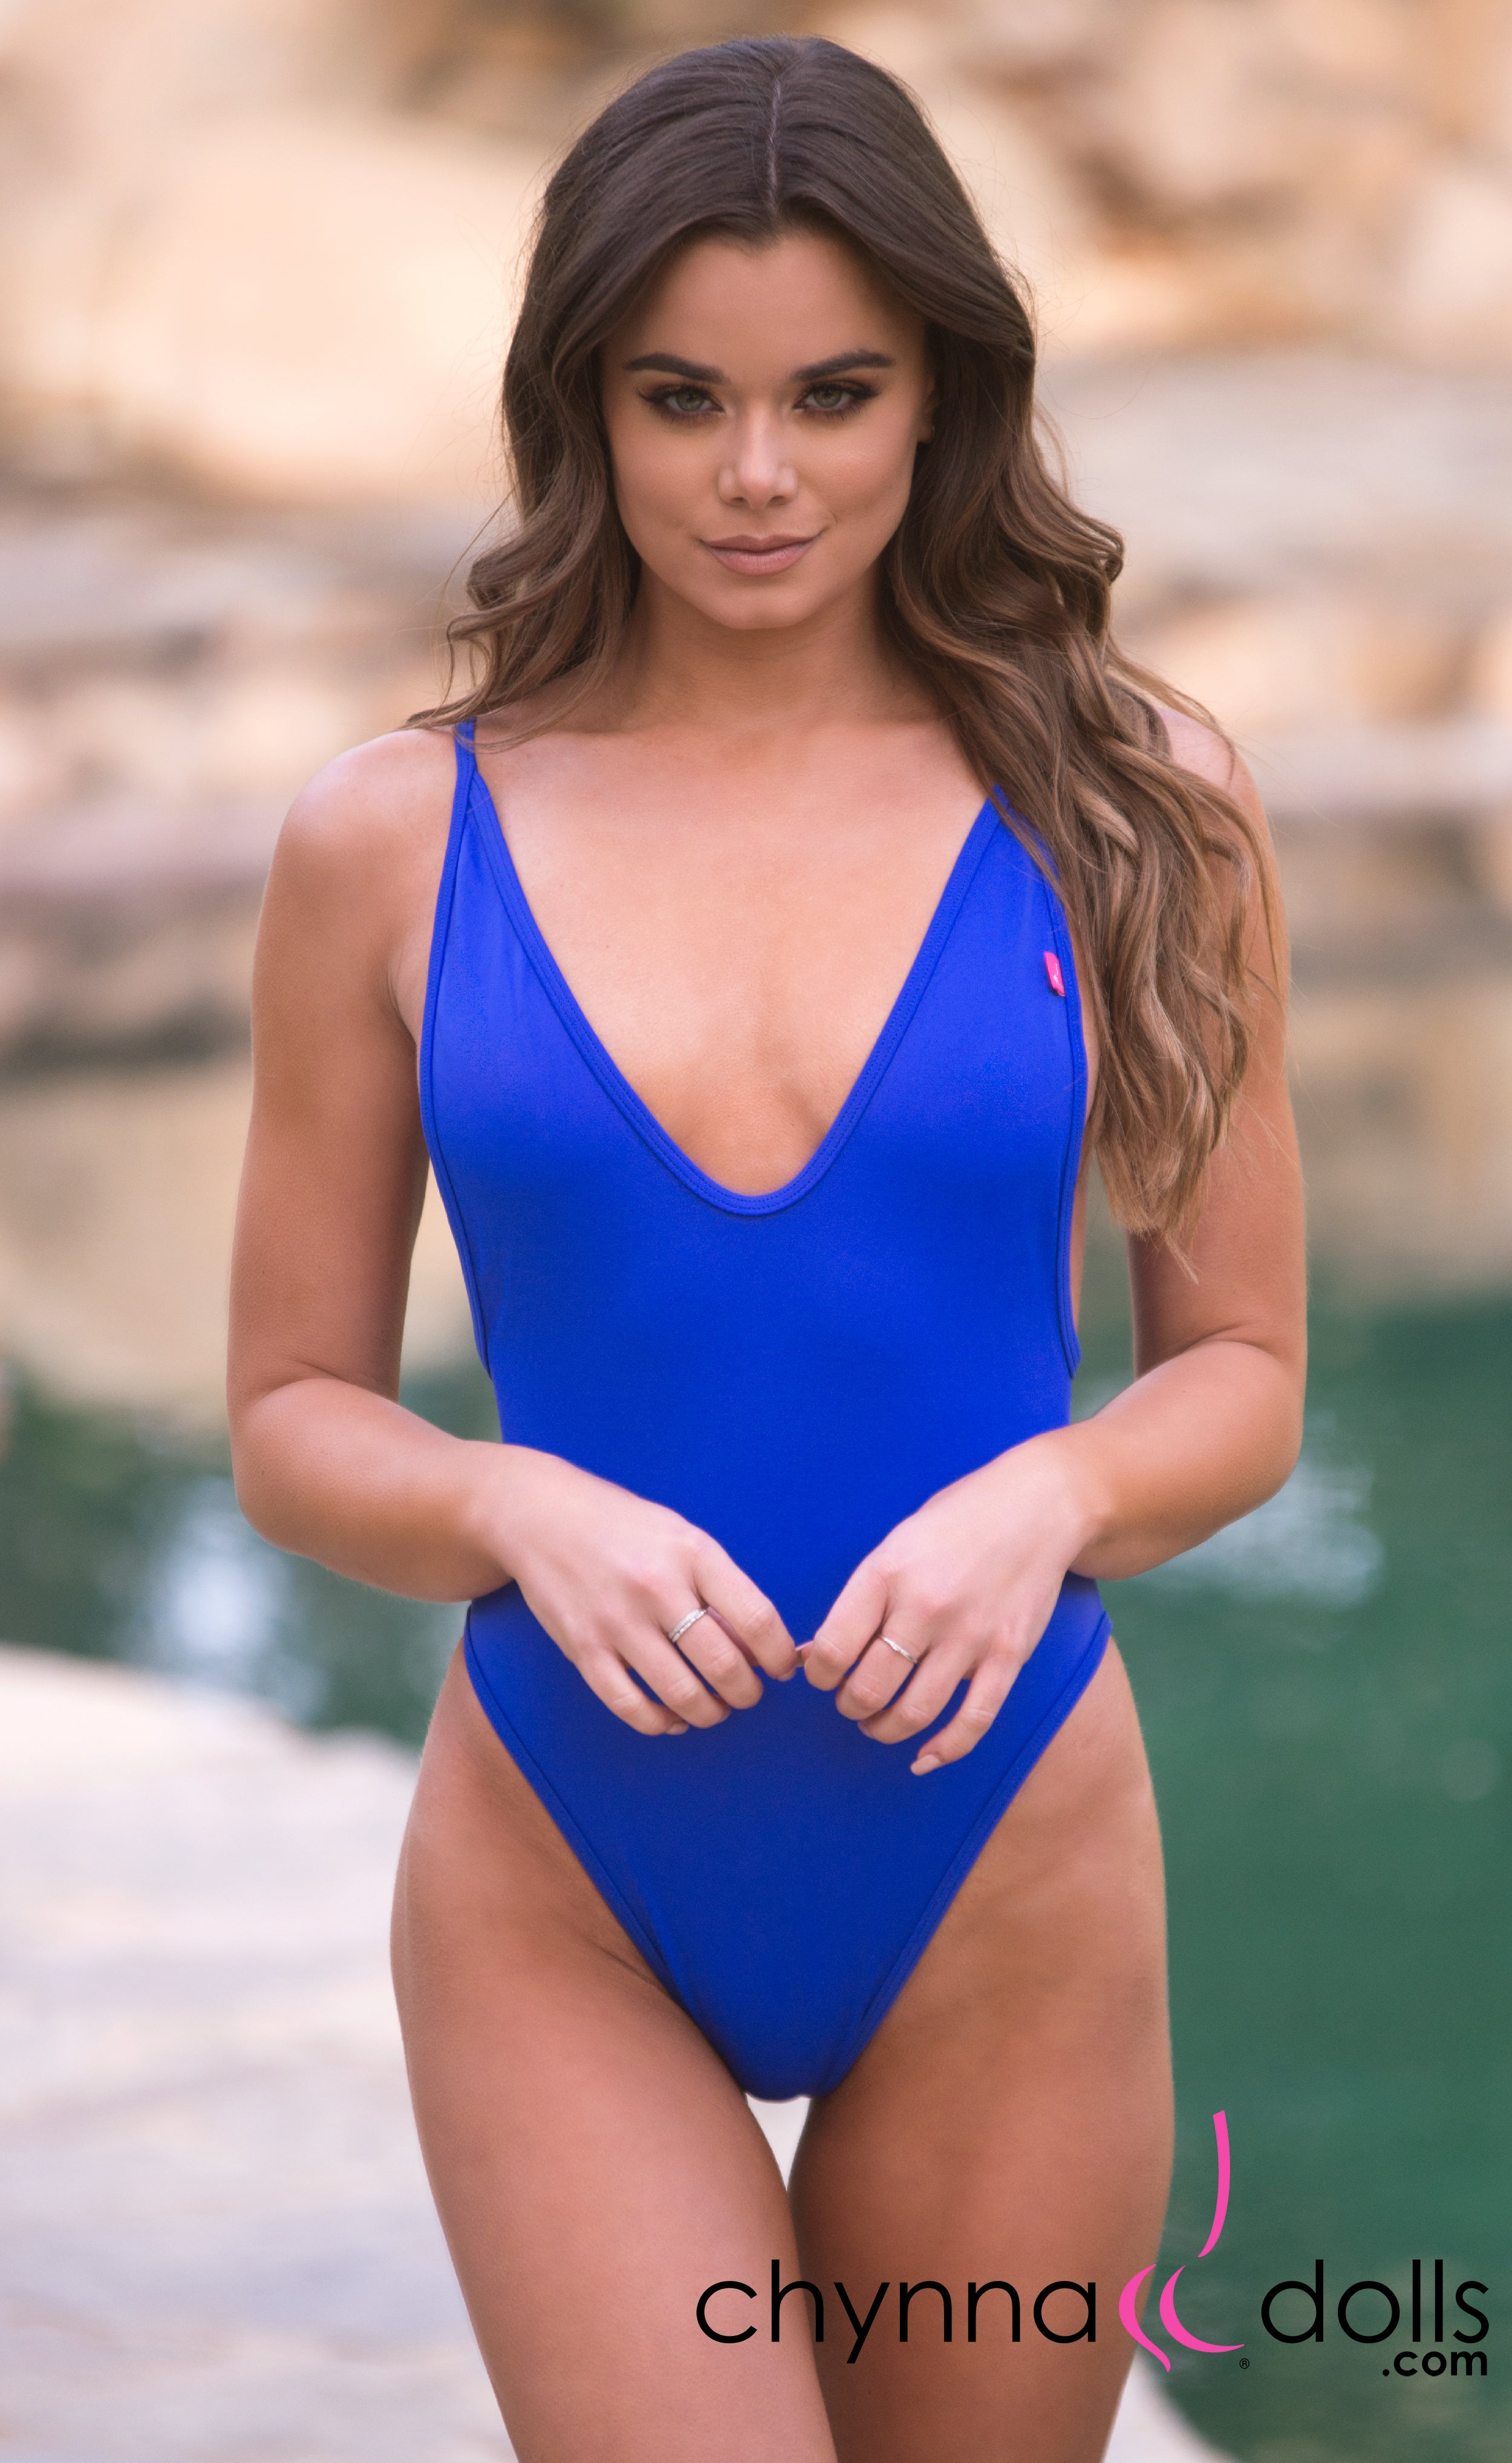 St. Martin: High Cut Monokini w/ Plunging Neckline - Royal Blue - Chynna Dolls Swimwear